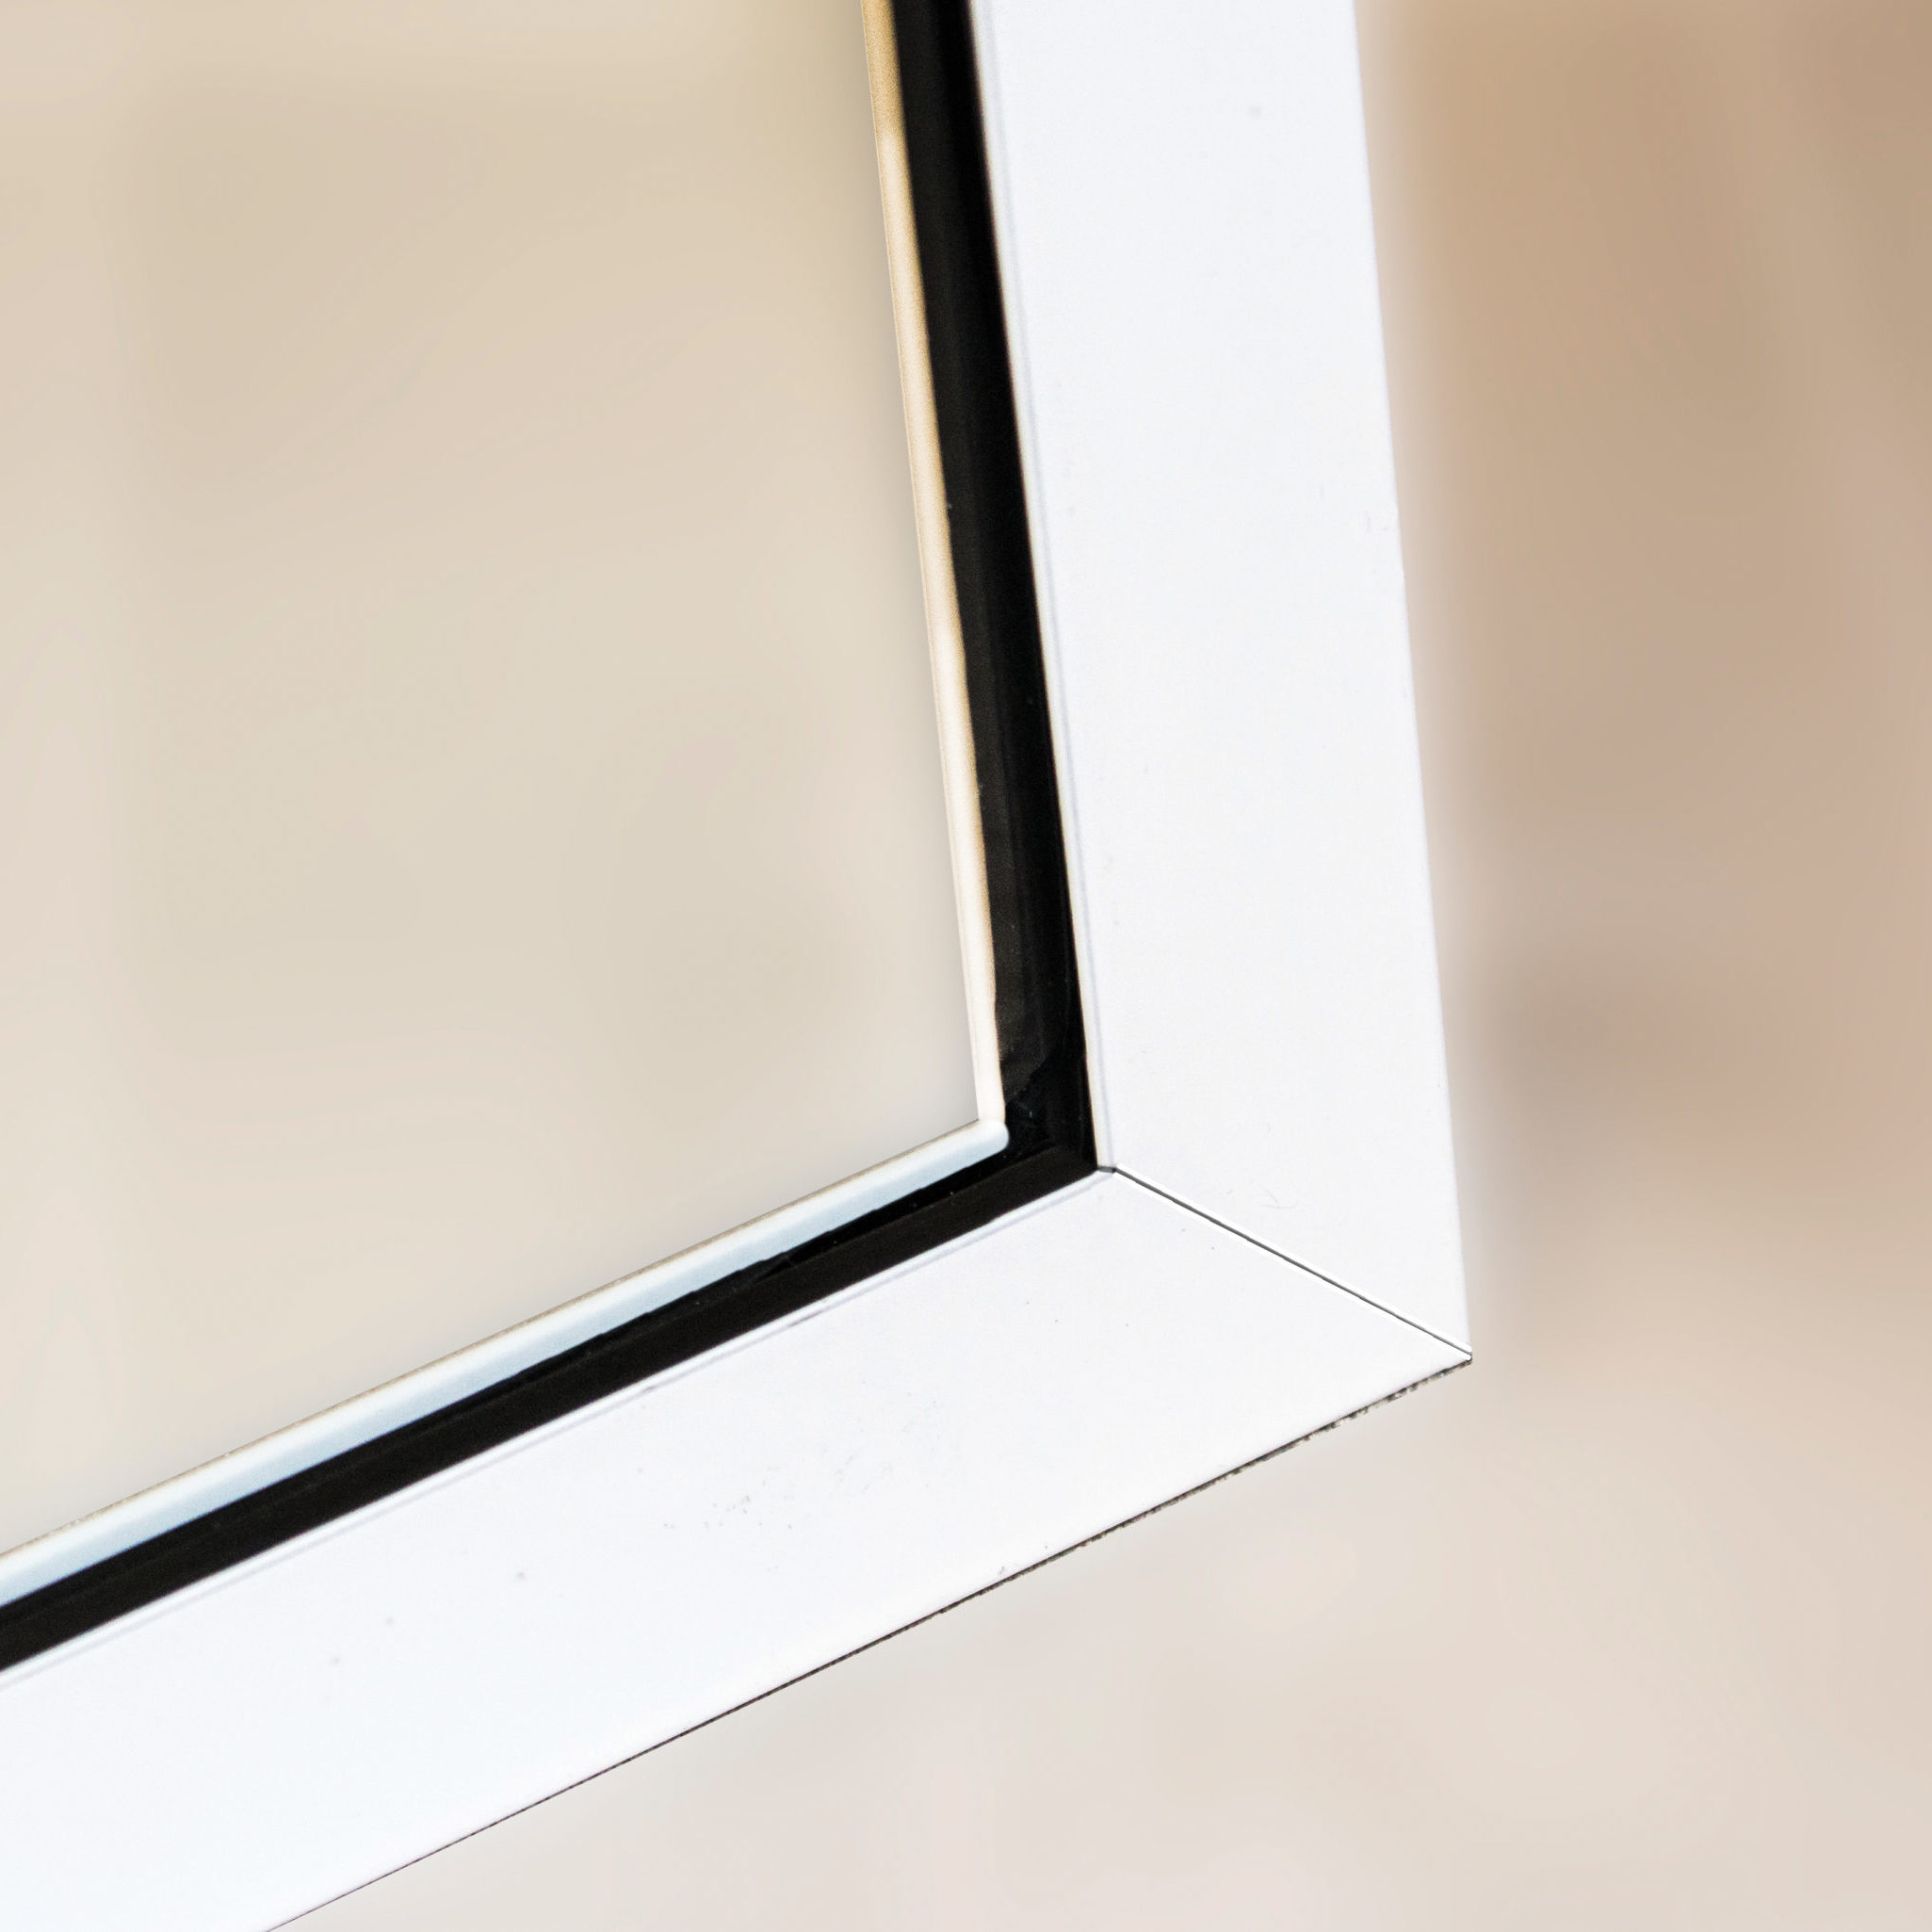 Features glass frame